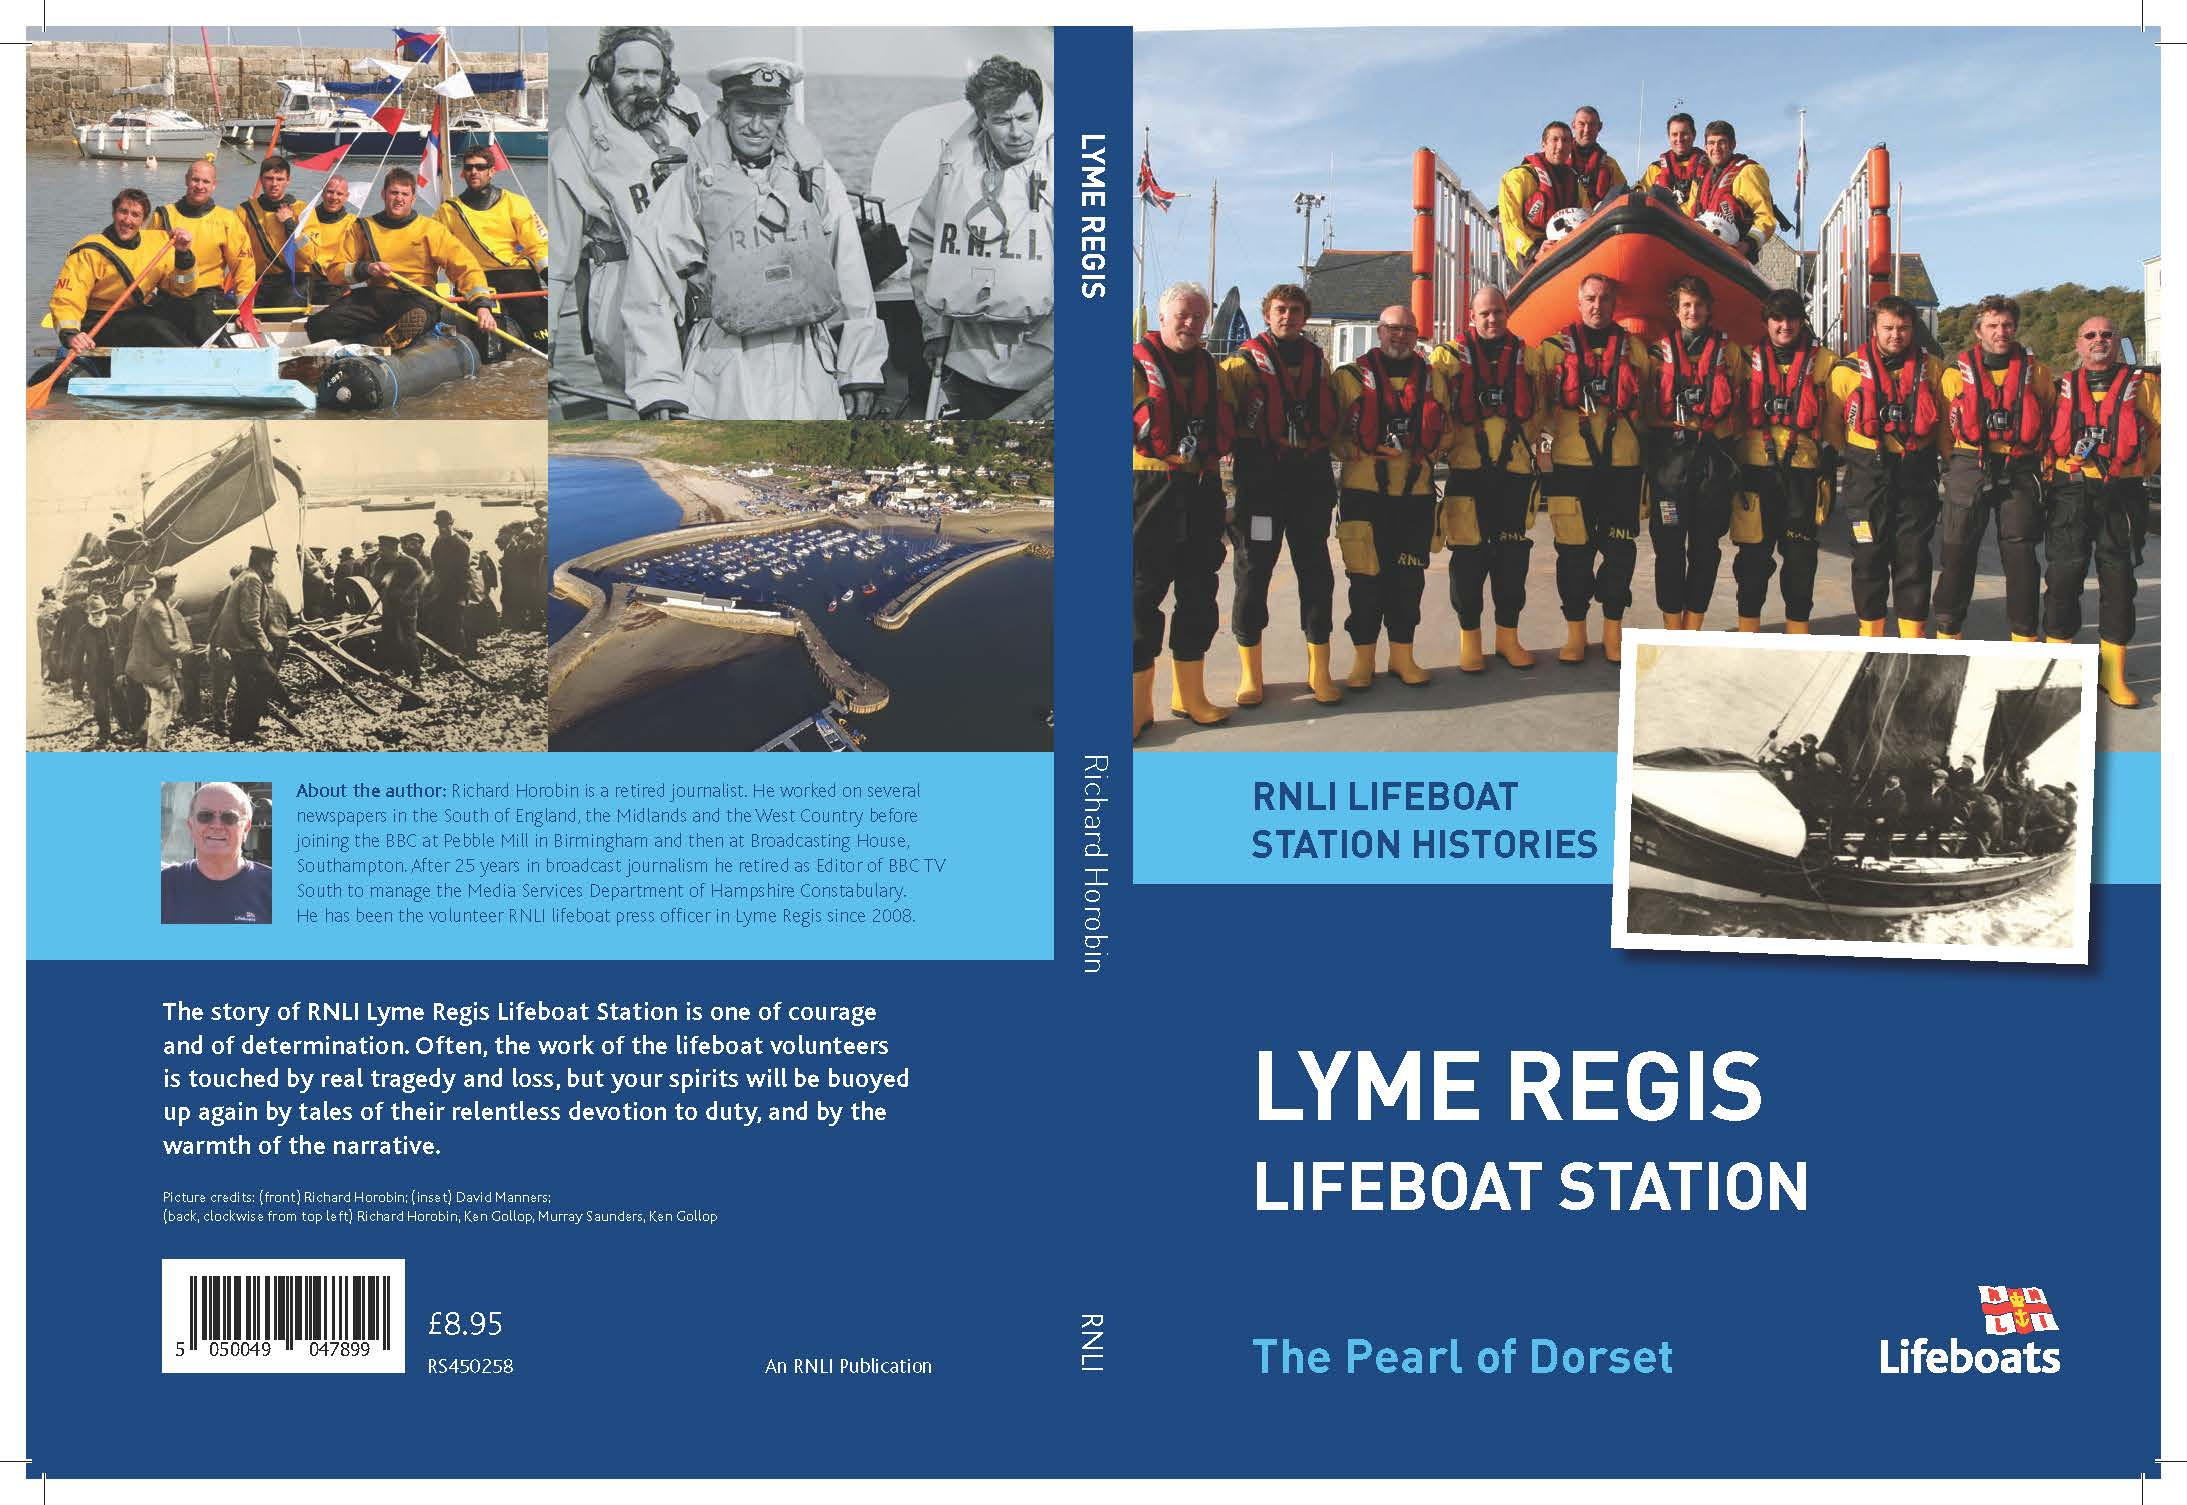 This is the cover of the new Lyme Regis book.